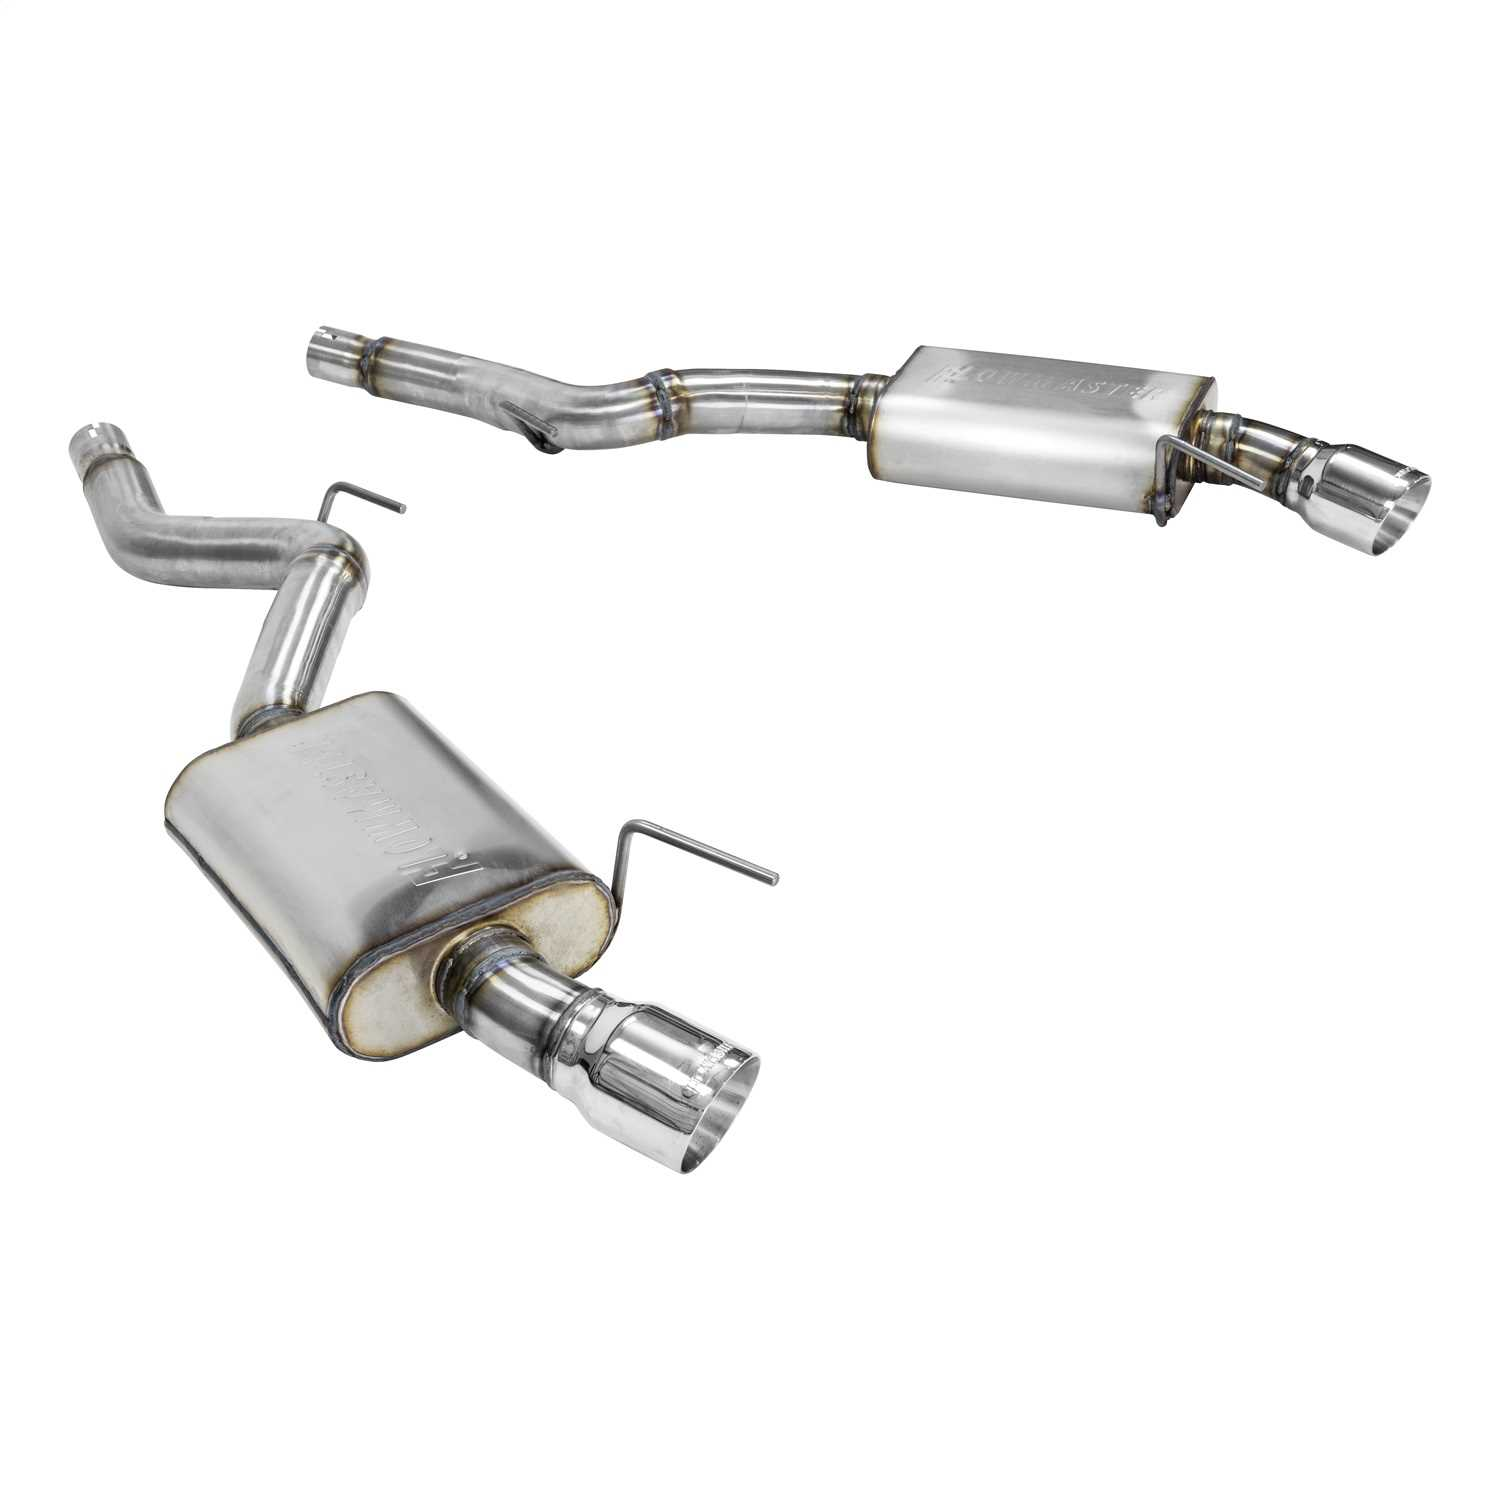 717789 Flowmaster FlowFX Axle Back Exhaust System